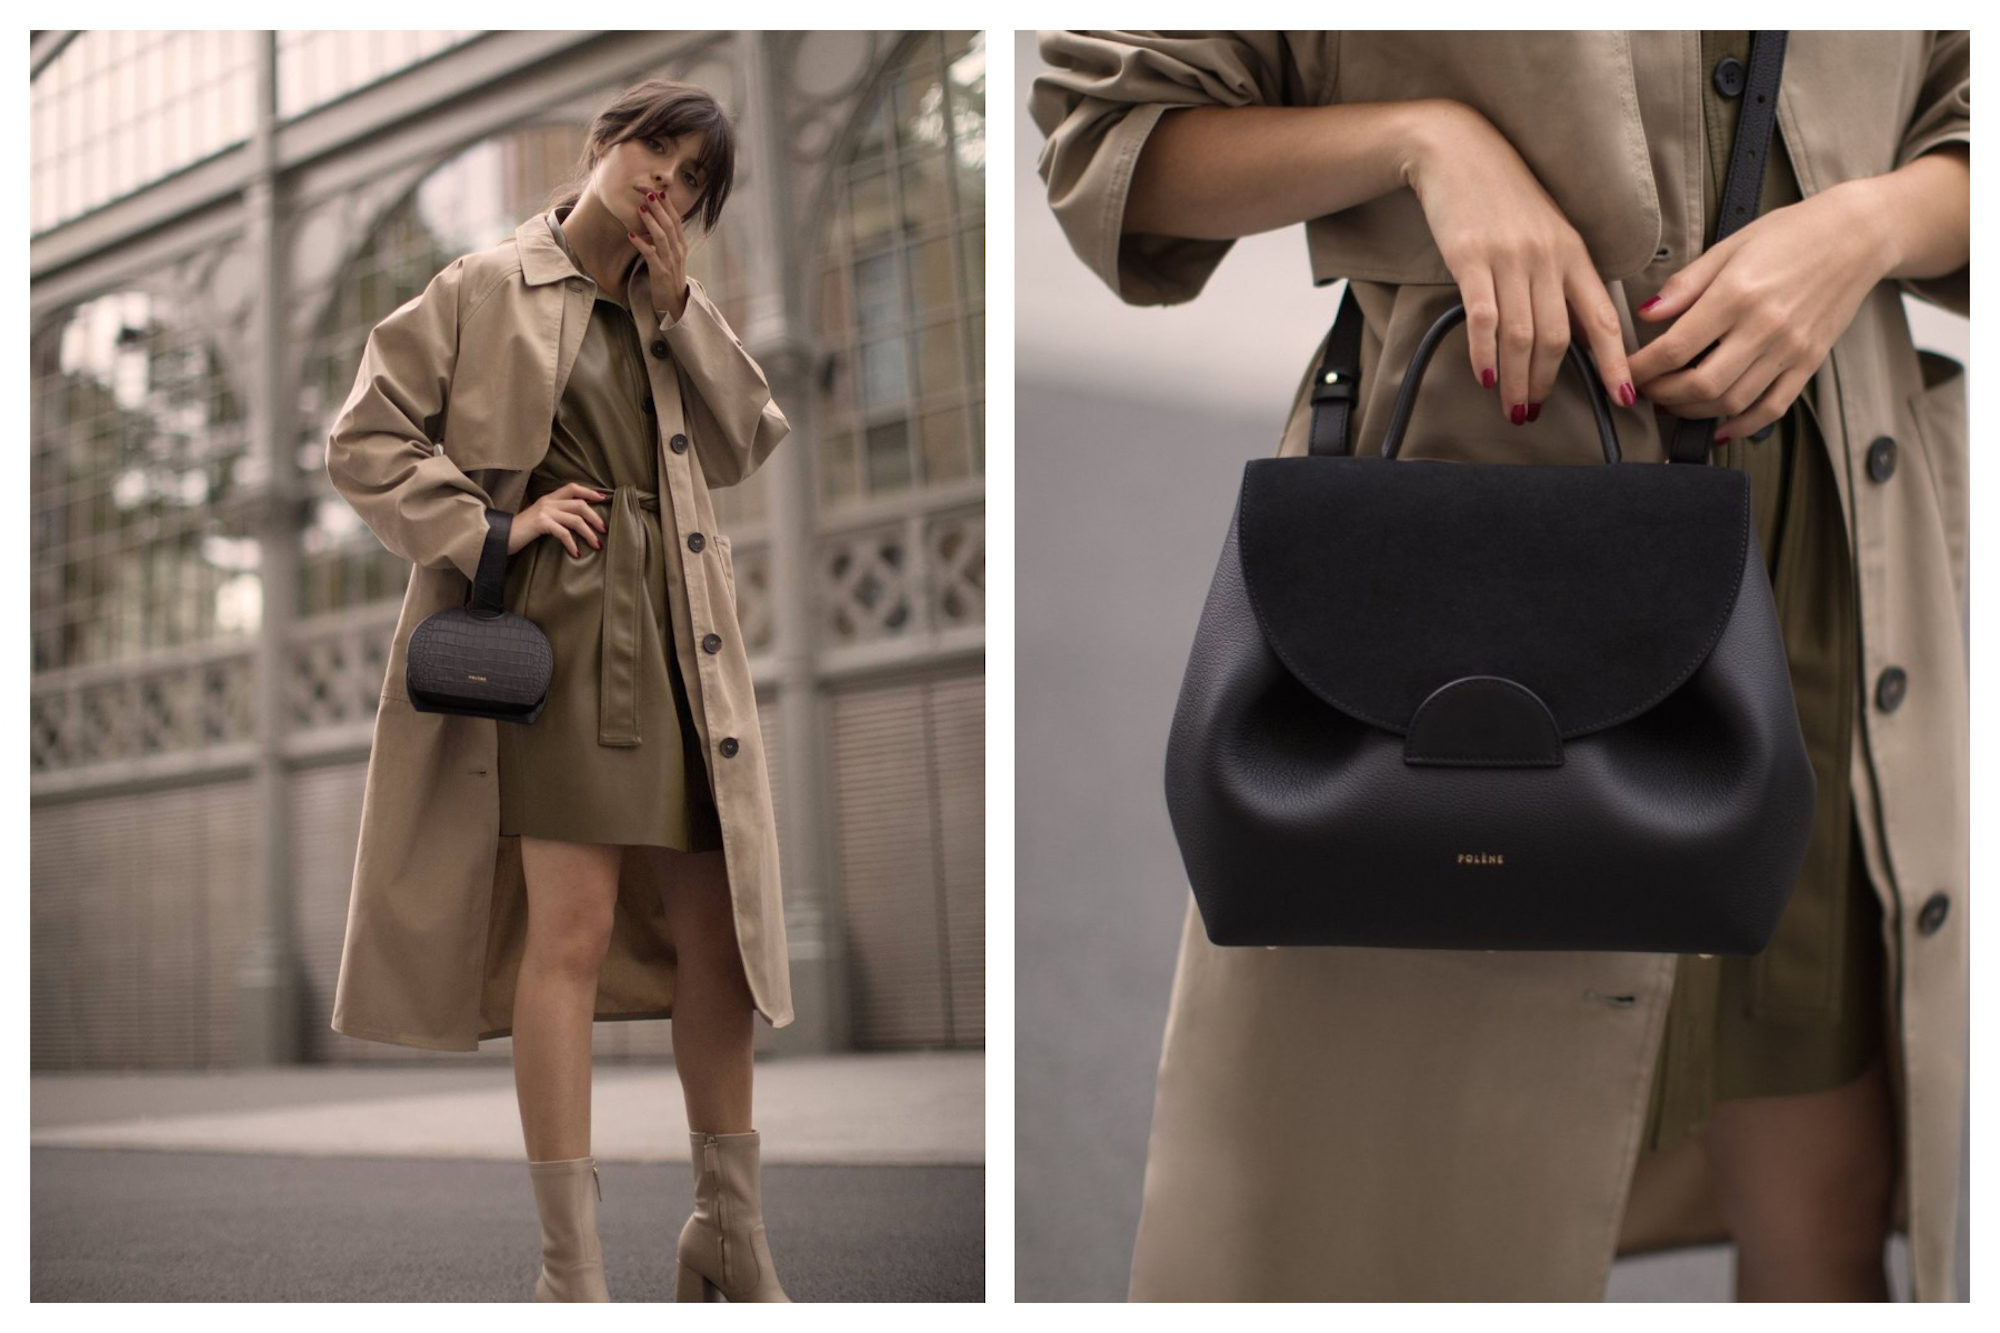 A Polène bag is the Parisian fashion essential, like this wrist bag (left) and well-cut black leather piece (right).